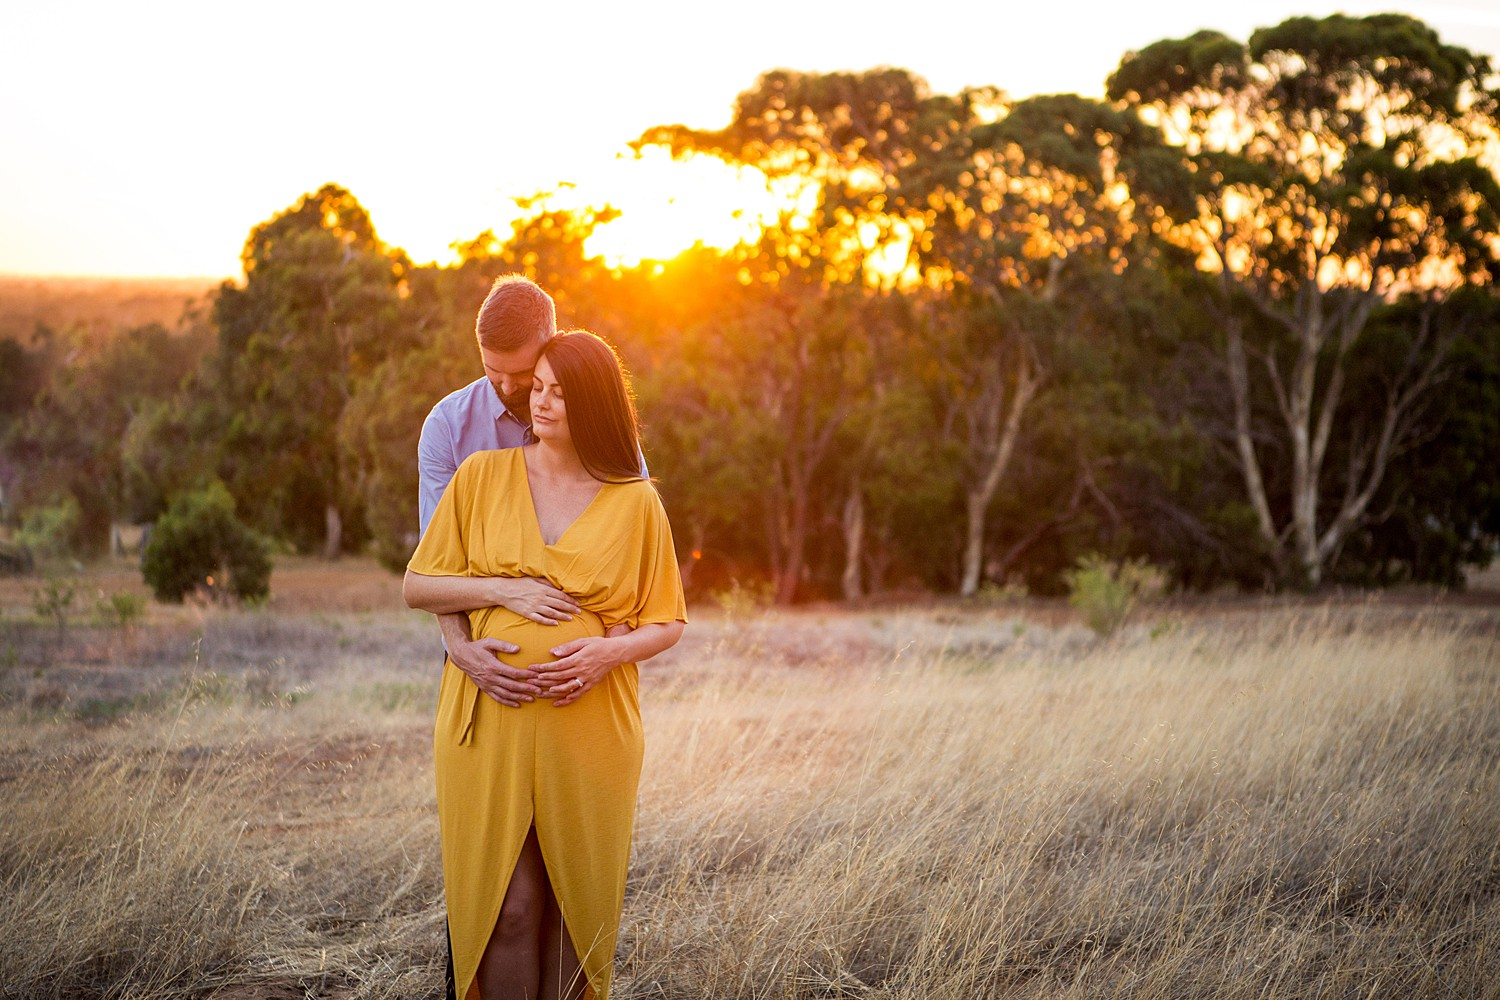 perth_hills_bush_maternity_photography_0017.jpg